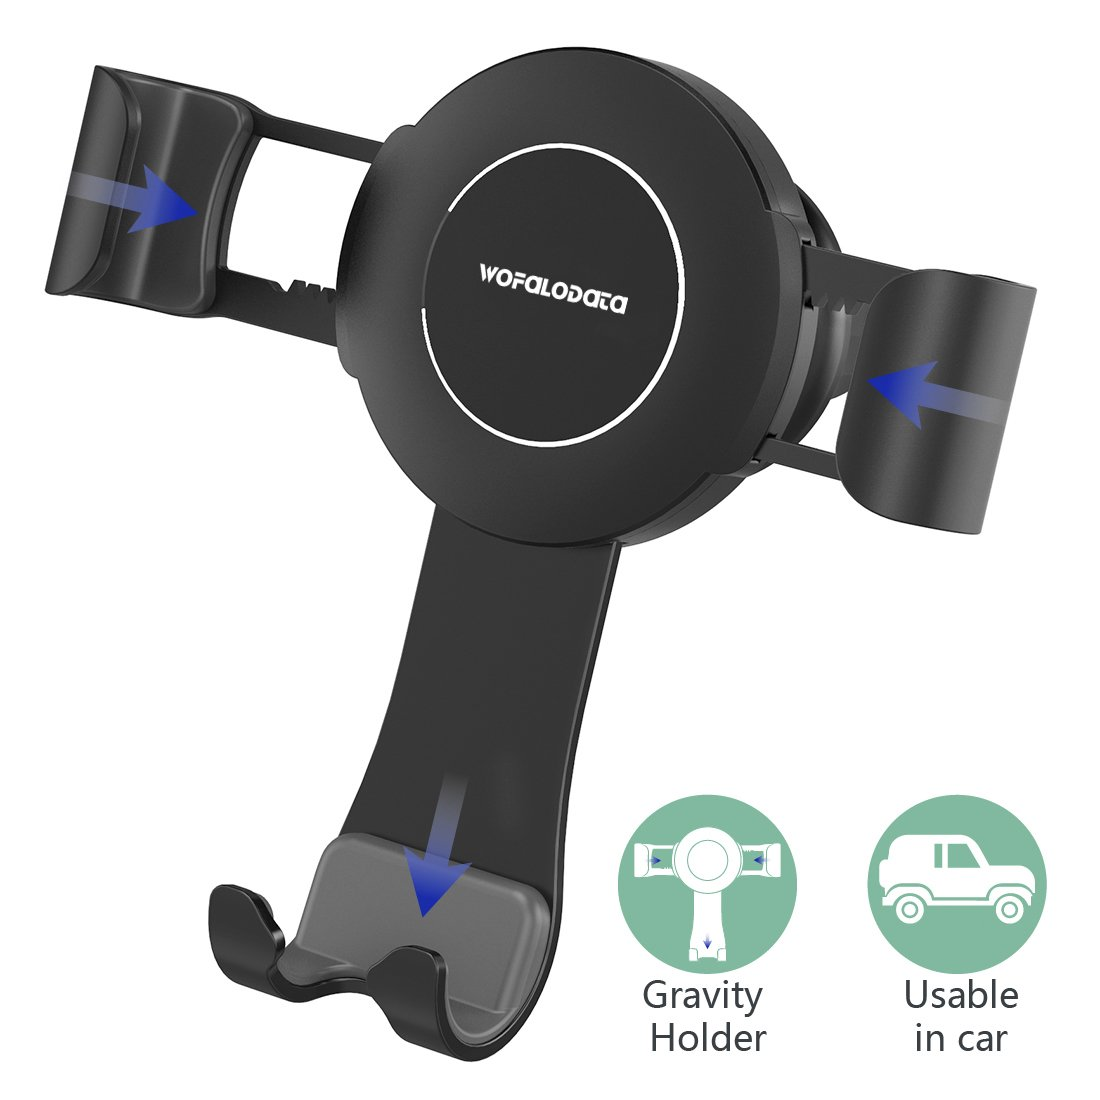 Wofalodata Cell Phone Holder for Car, Car Air Vent Phone Mount Cradle with Auto Lock Release for iPhone X/8/8 Plus/7/7 Plus/6/6S, Samsung Galaxy S8/S7/S6, Nexus, HUAWEI and others(Black)